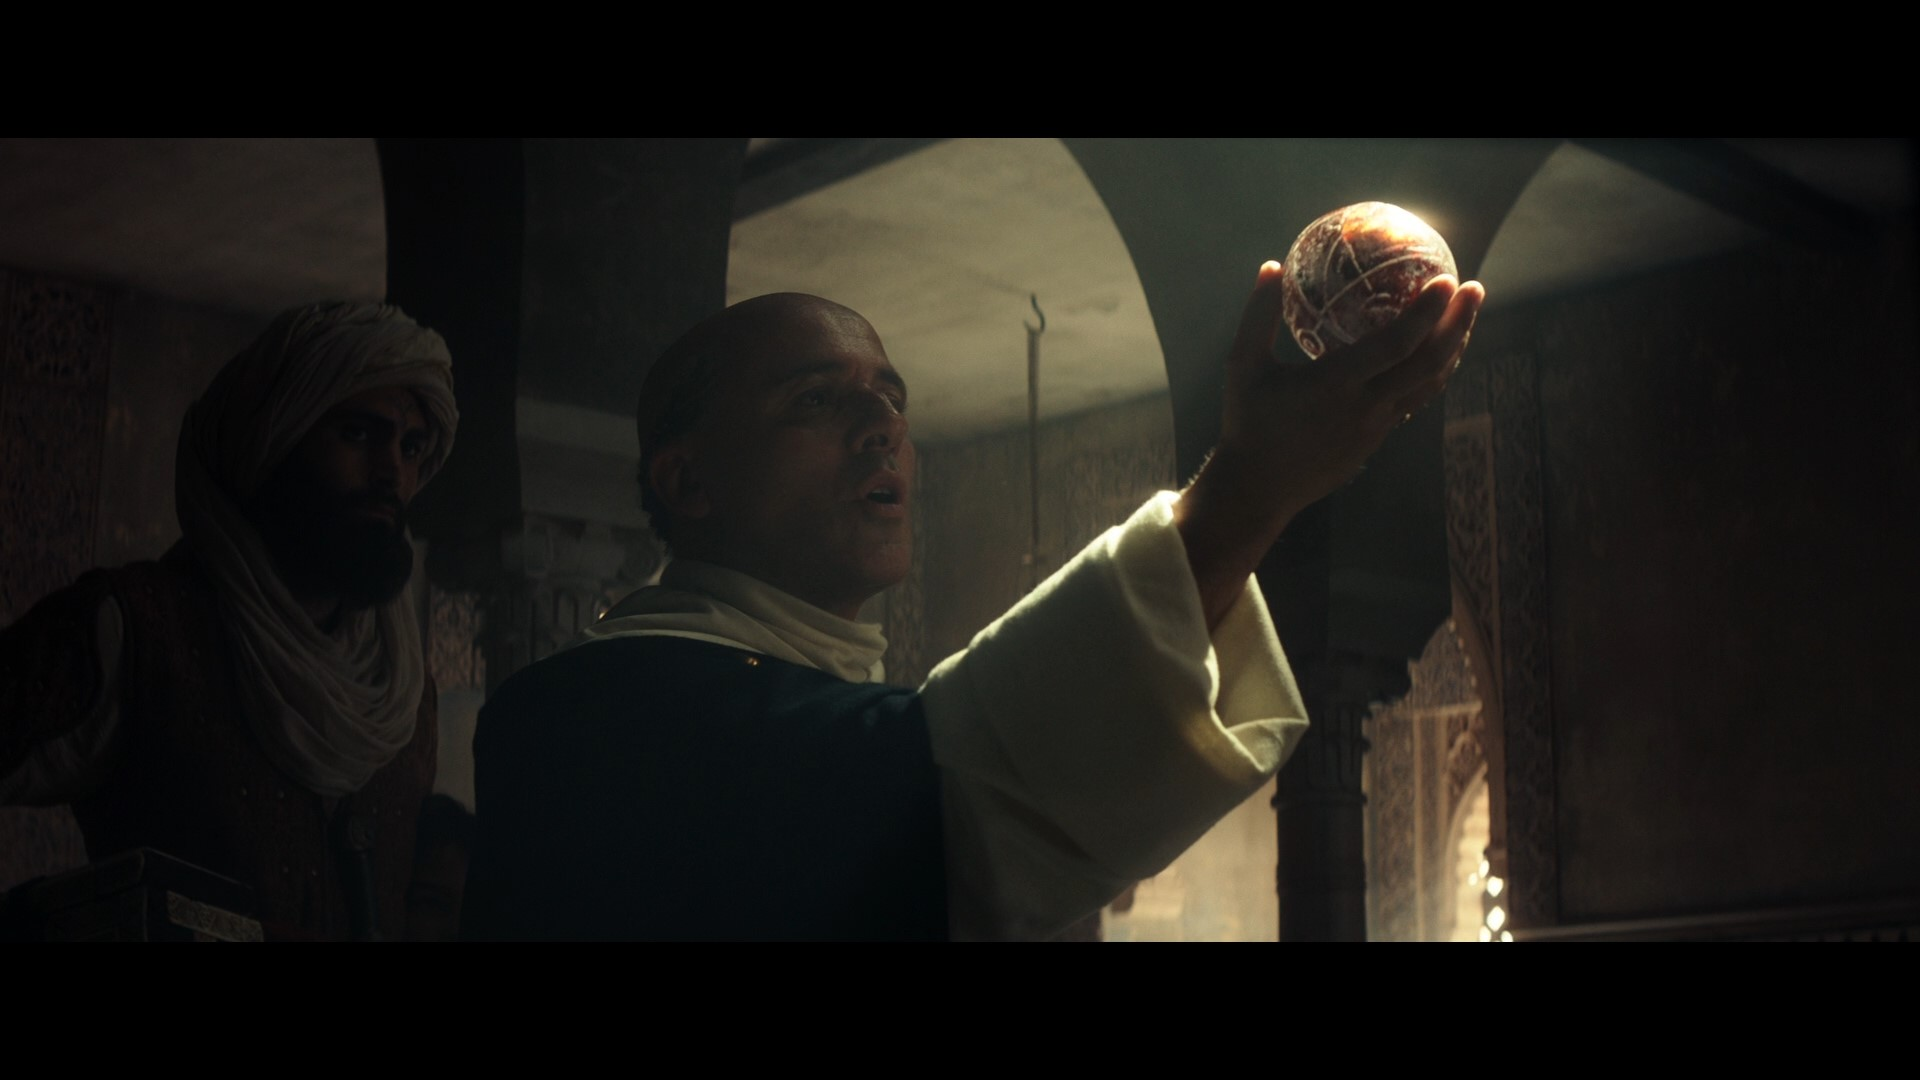 ASSASSIN'S CREED (2016) - Apple of Eden and Chest - Image 18 of 20